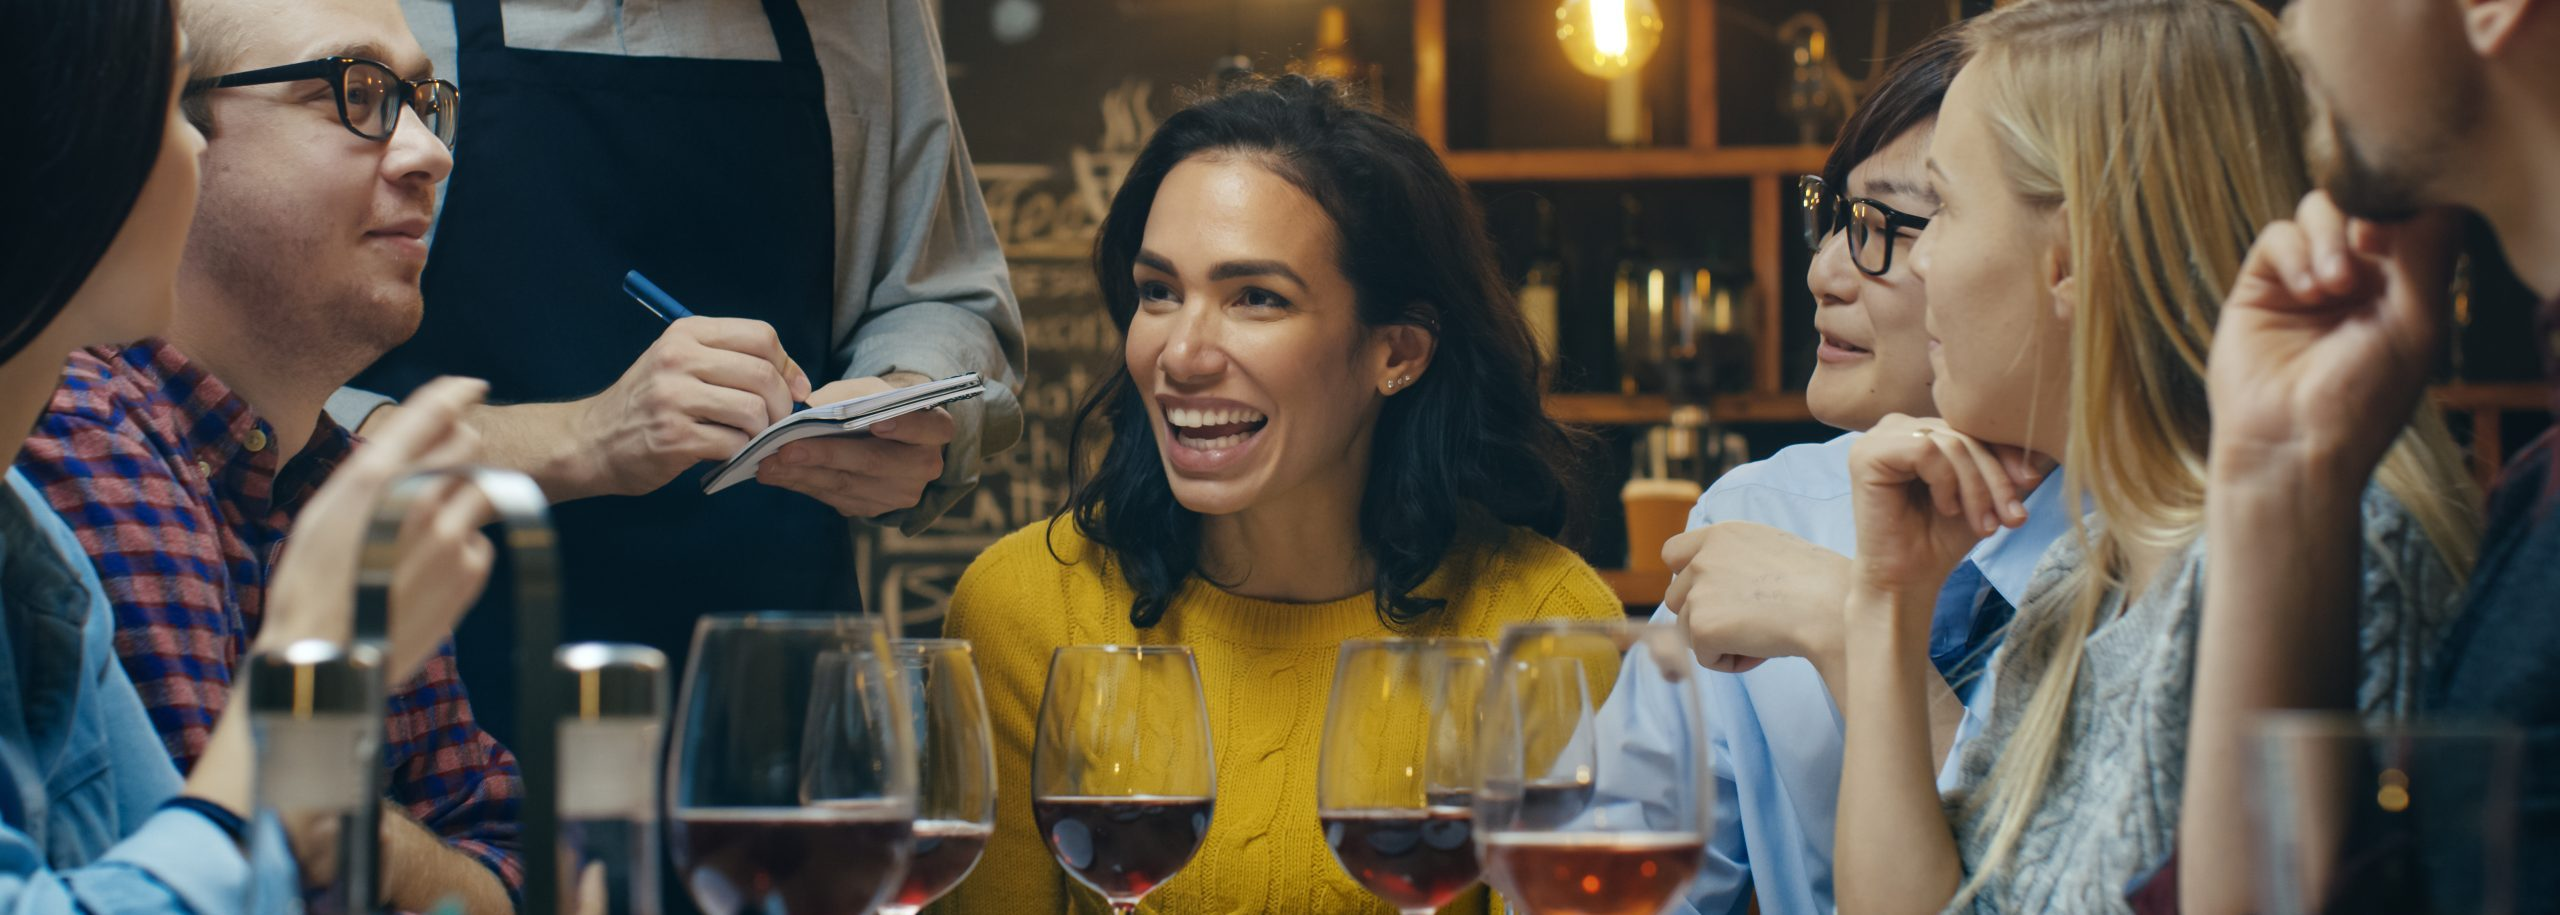 WINE INDUSTRY DEMANDS GOVERNMENT SUPPORT FOR HOSPITALITY